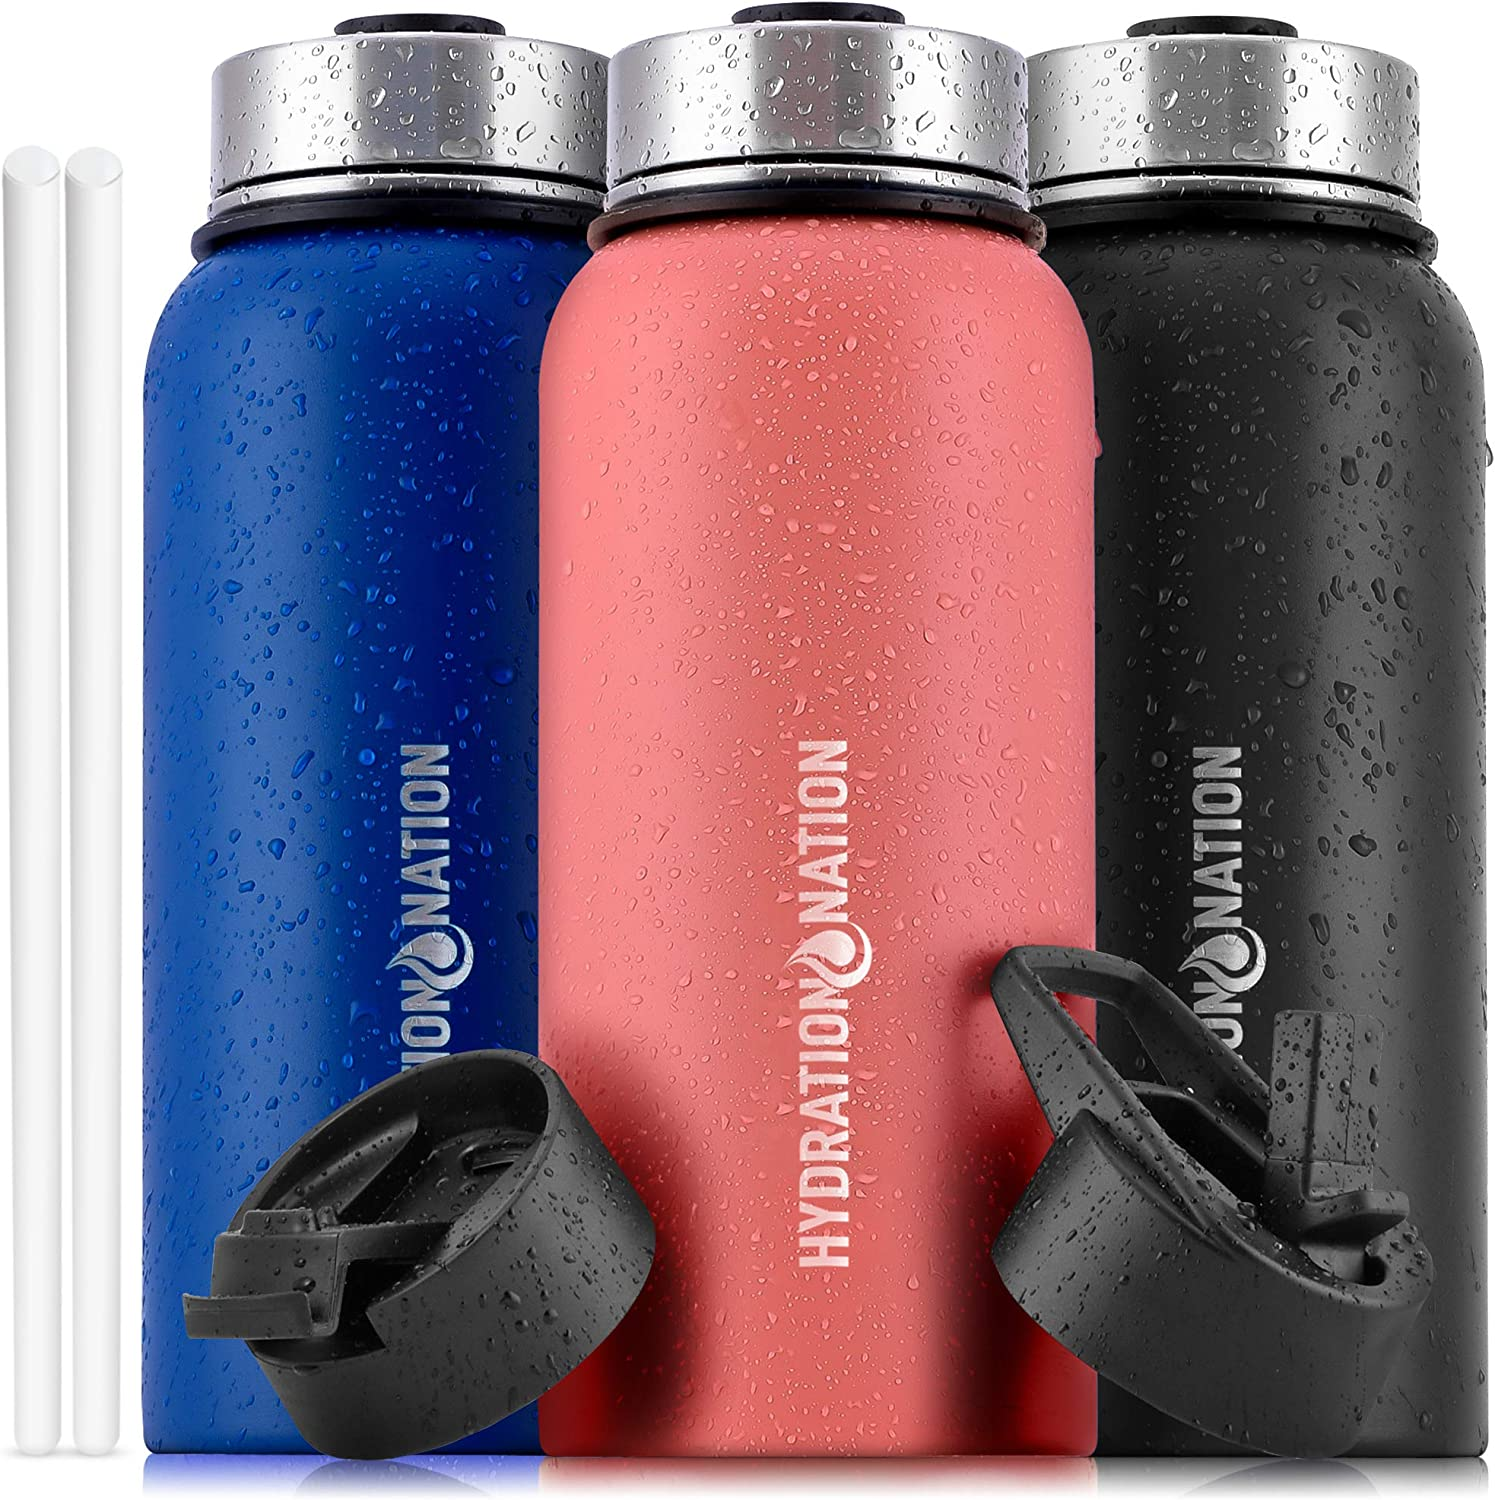 Hydration Nation (40oz) Vacuum Insulated Water Bottle - Durable Metal Water Bottle For Sports & Outdoor - Thermo Stainless Steel Water Bottle With Straw & 3 Lids For Hot & Cold Drinks (Peach)